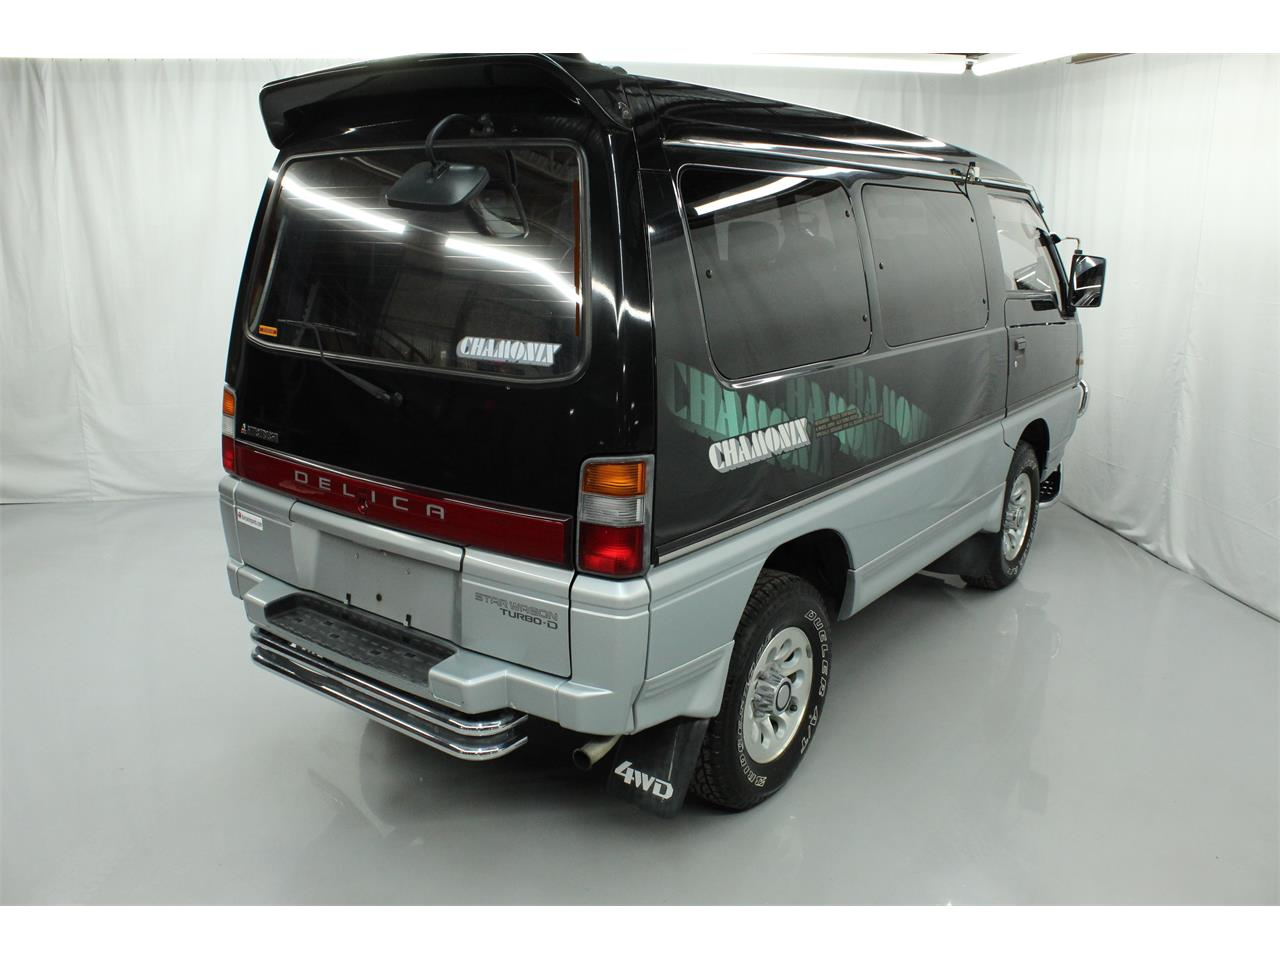 1992 Mitsubishi Delica for sale in Christiansburg, VA – photo 9